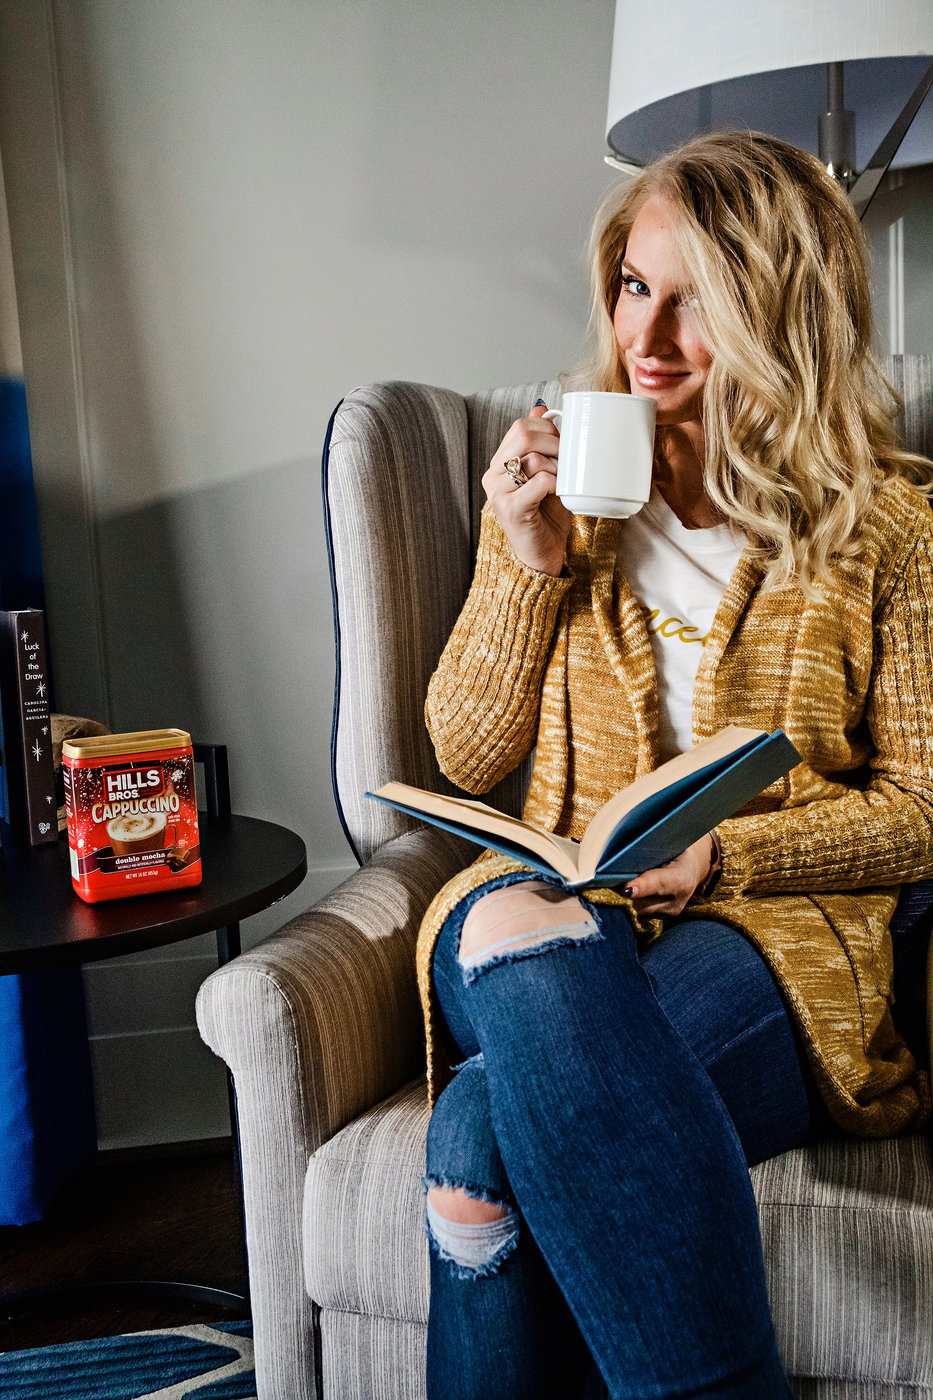 Looking for a great book to read this month? Popular Atlanta Blogger is sharing her top picks with the November Book Club! Click to see it and join in this month's book picks!